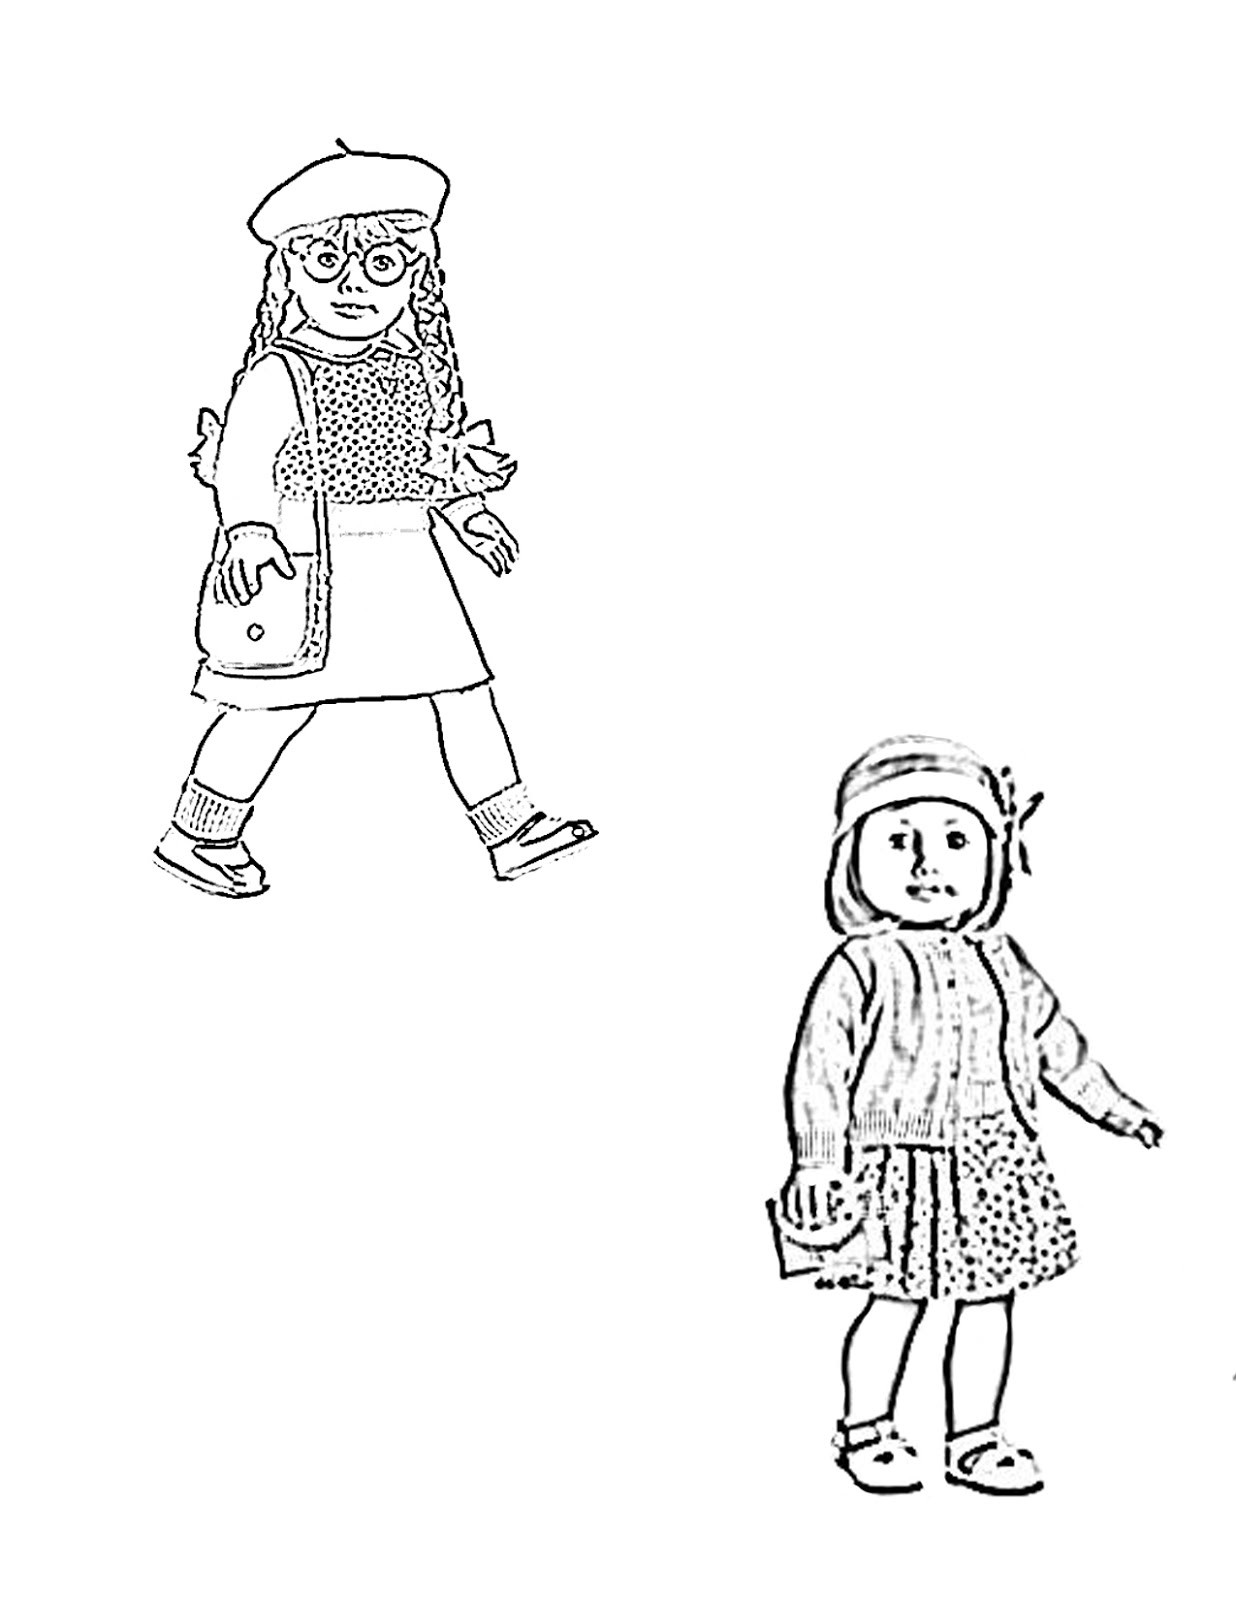 American Girl Coloring Pages Rebecca  My Cup Overflows Kit Kittredge An American Girl